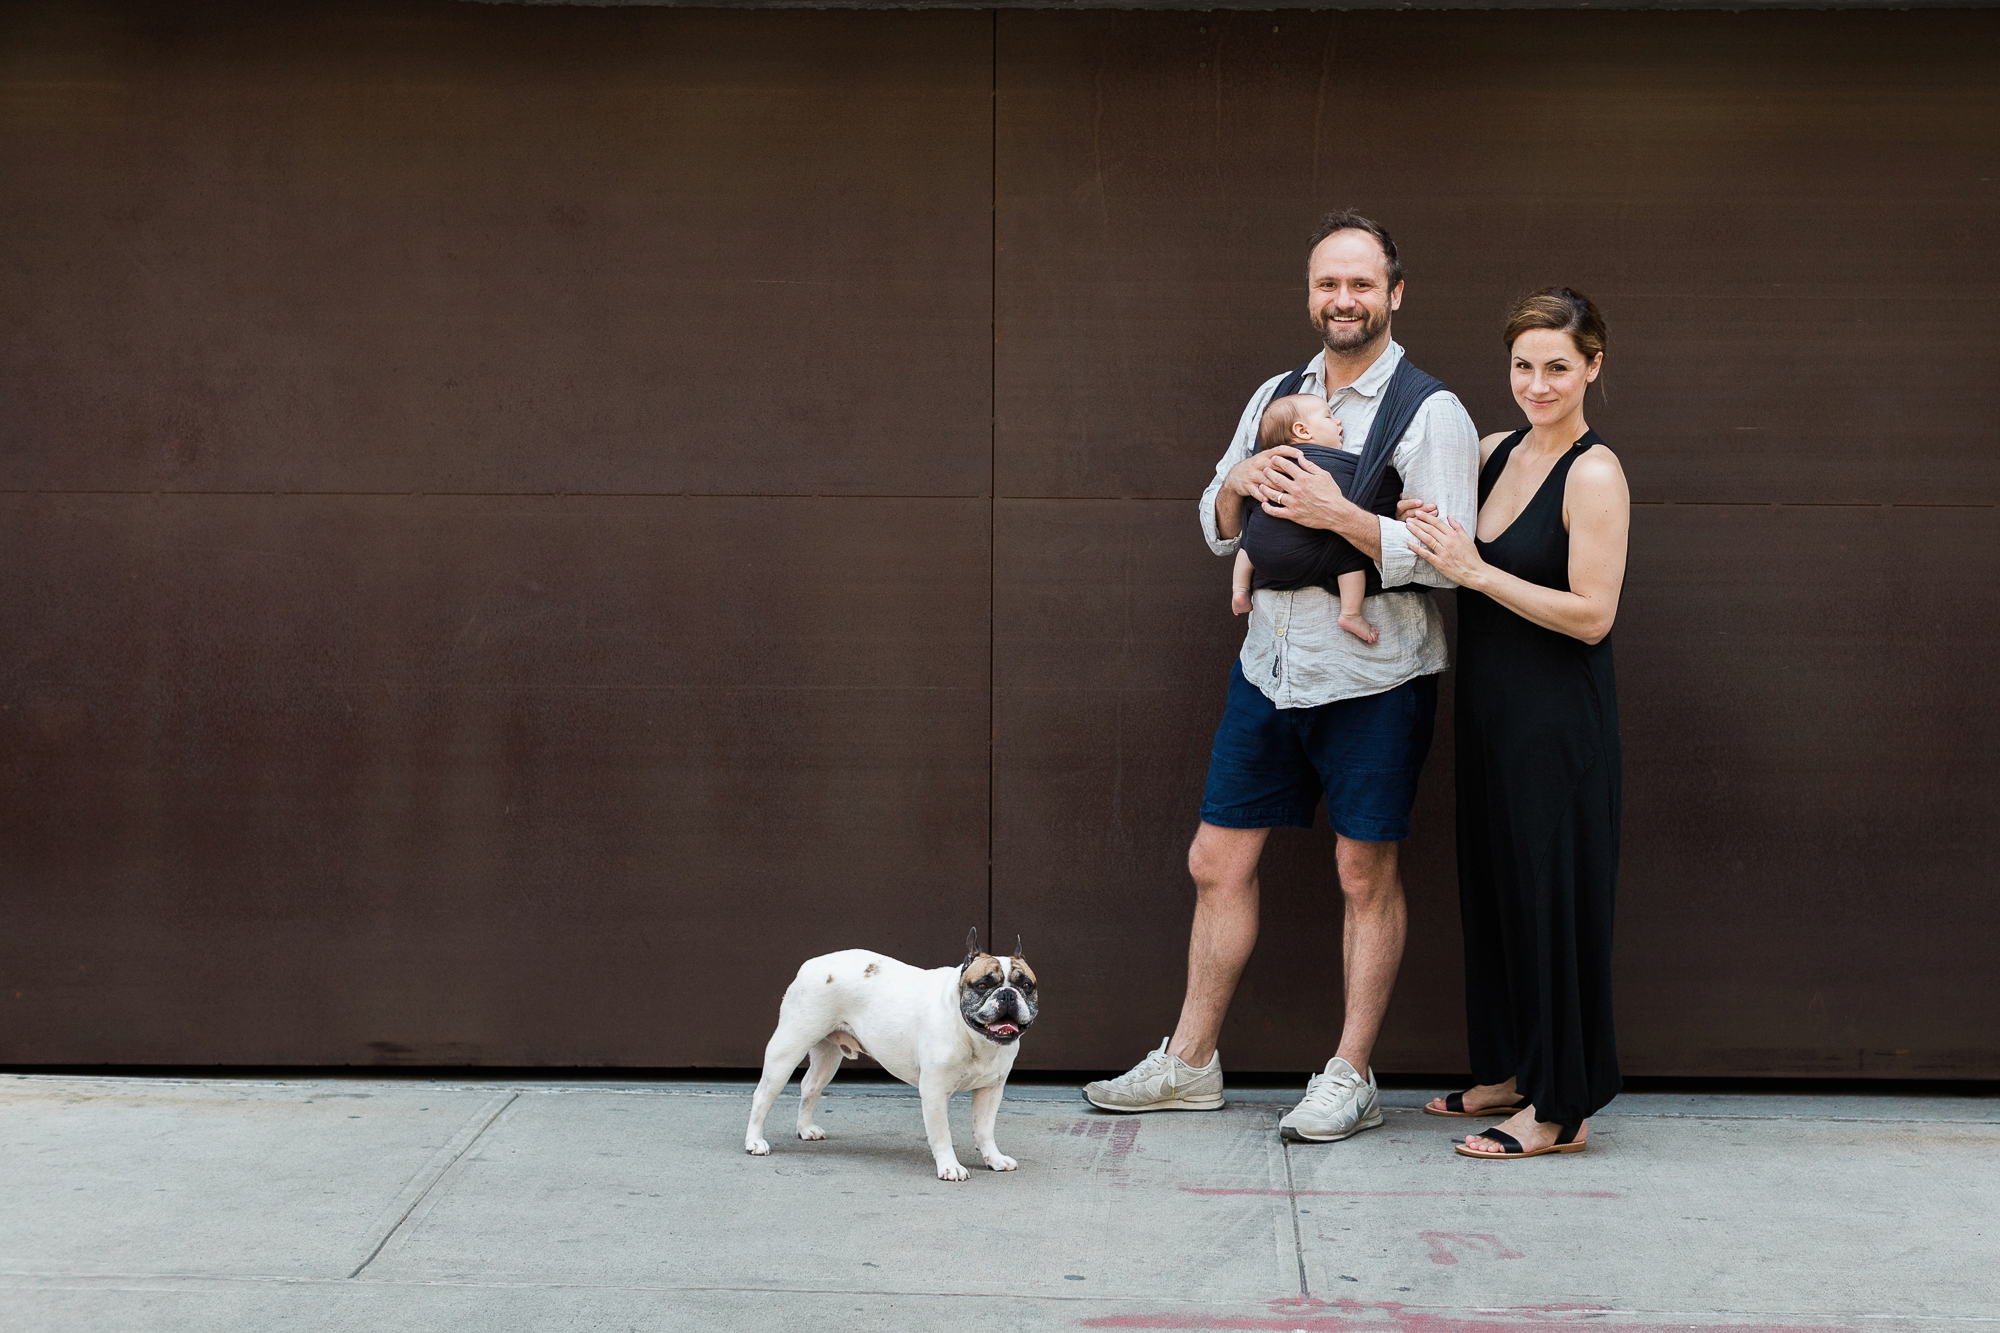 Family poses for a portrait with their dog in dumbo brooklyn